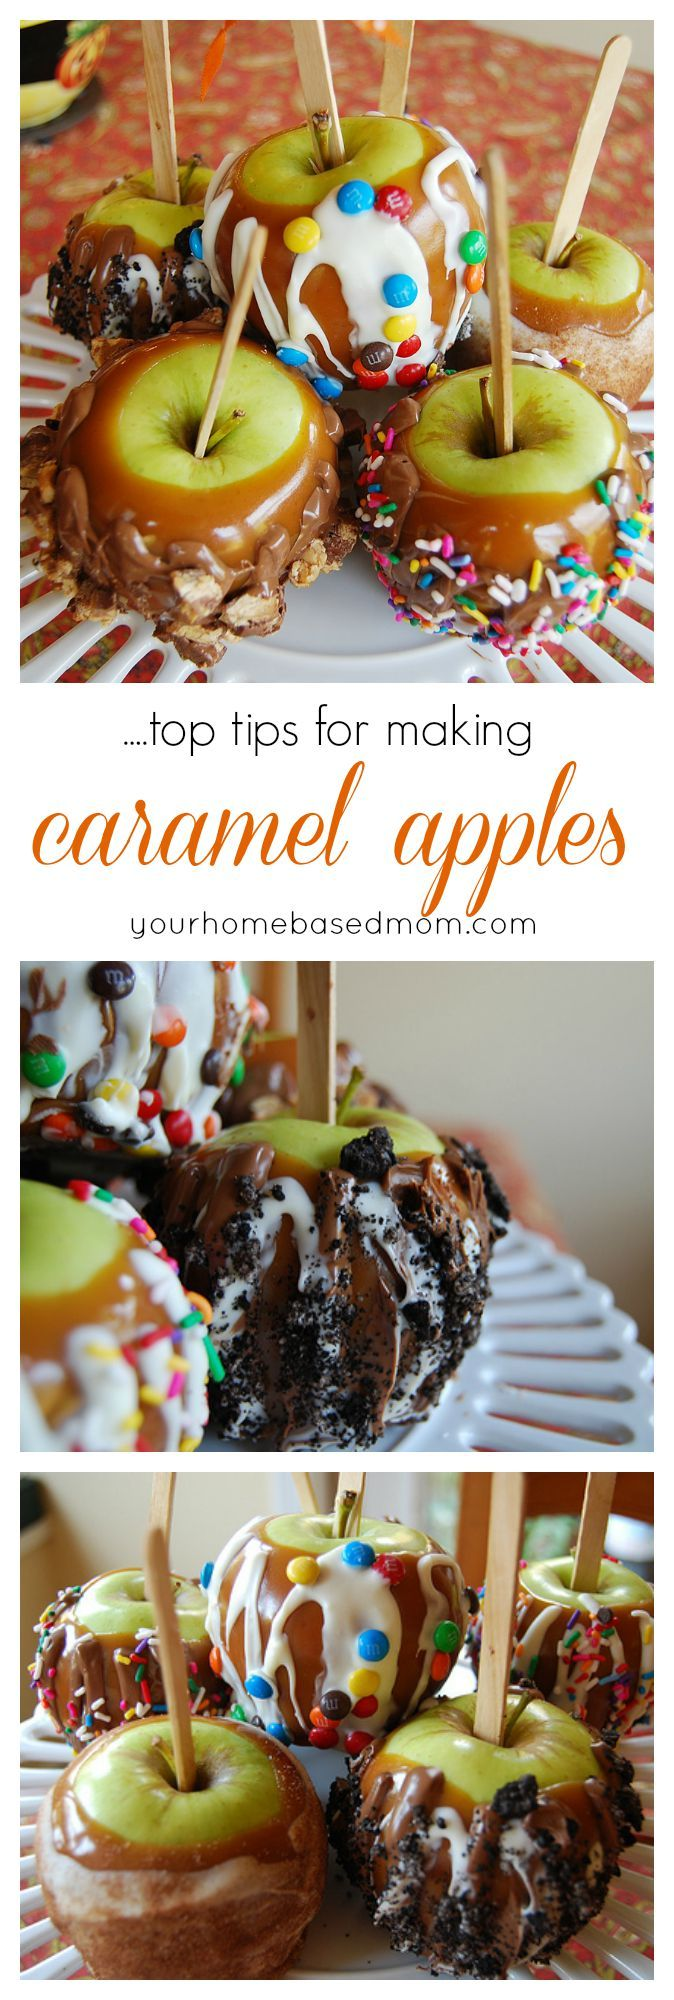 Top Tips for Making Caramel Apples. Fun Fall treat idea.